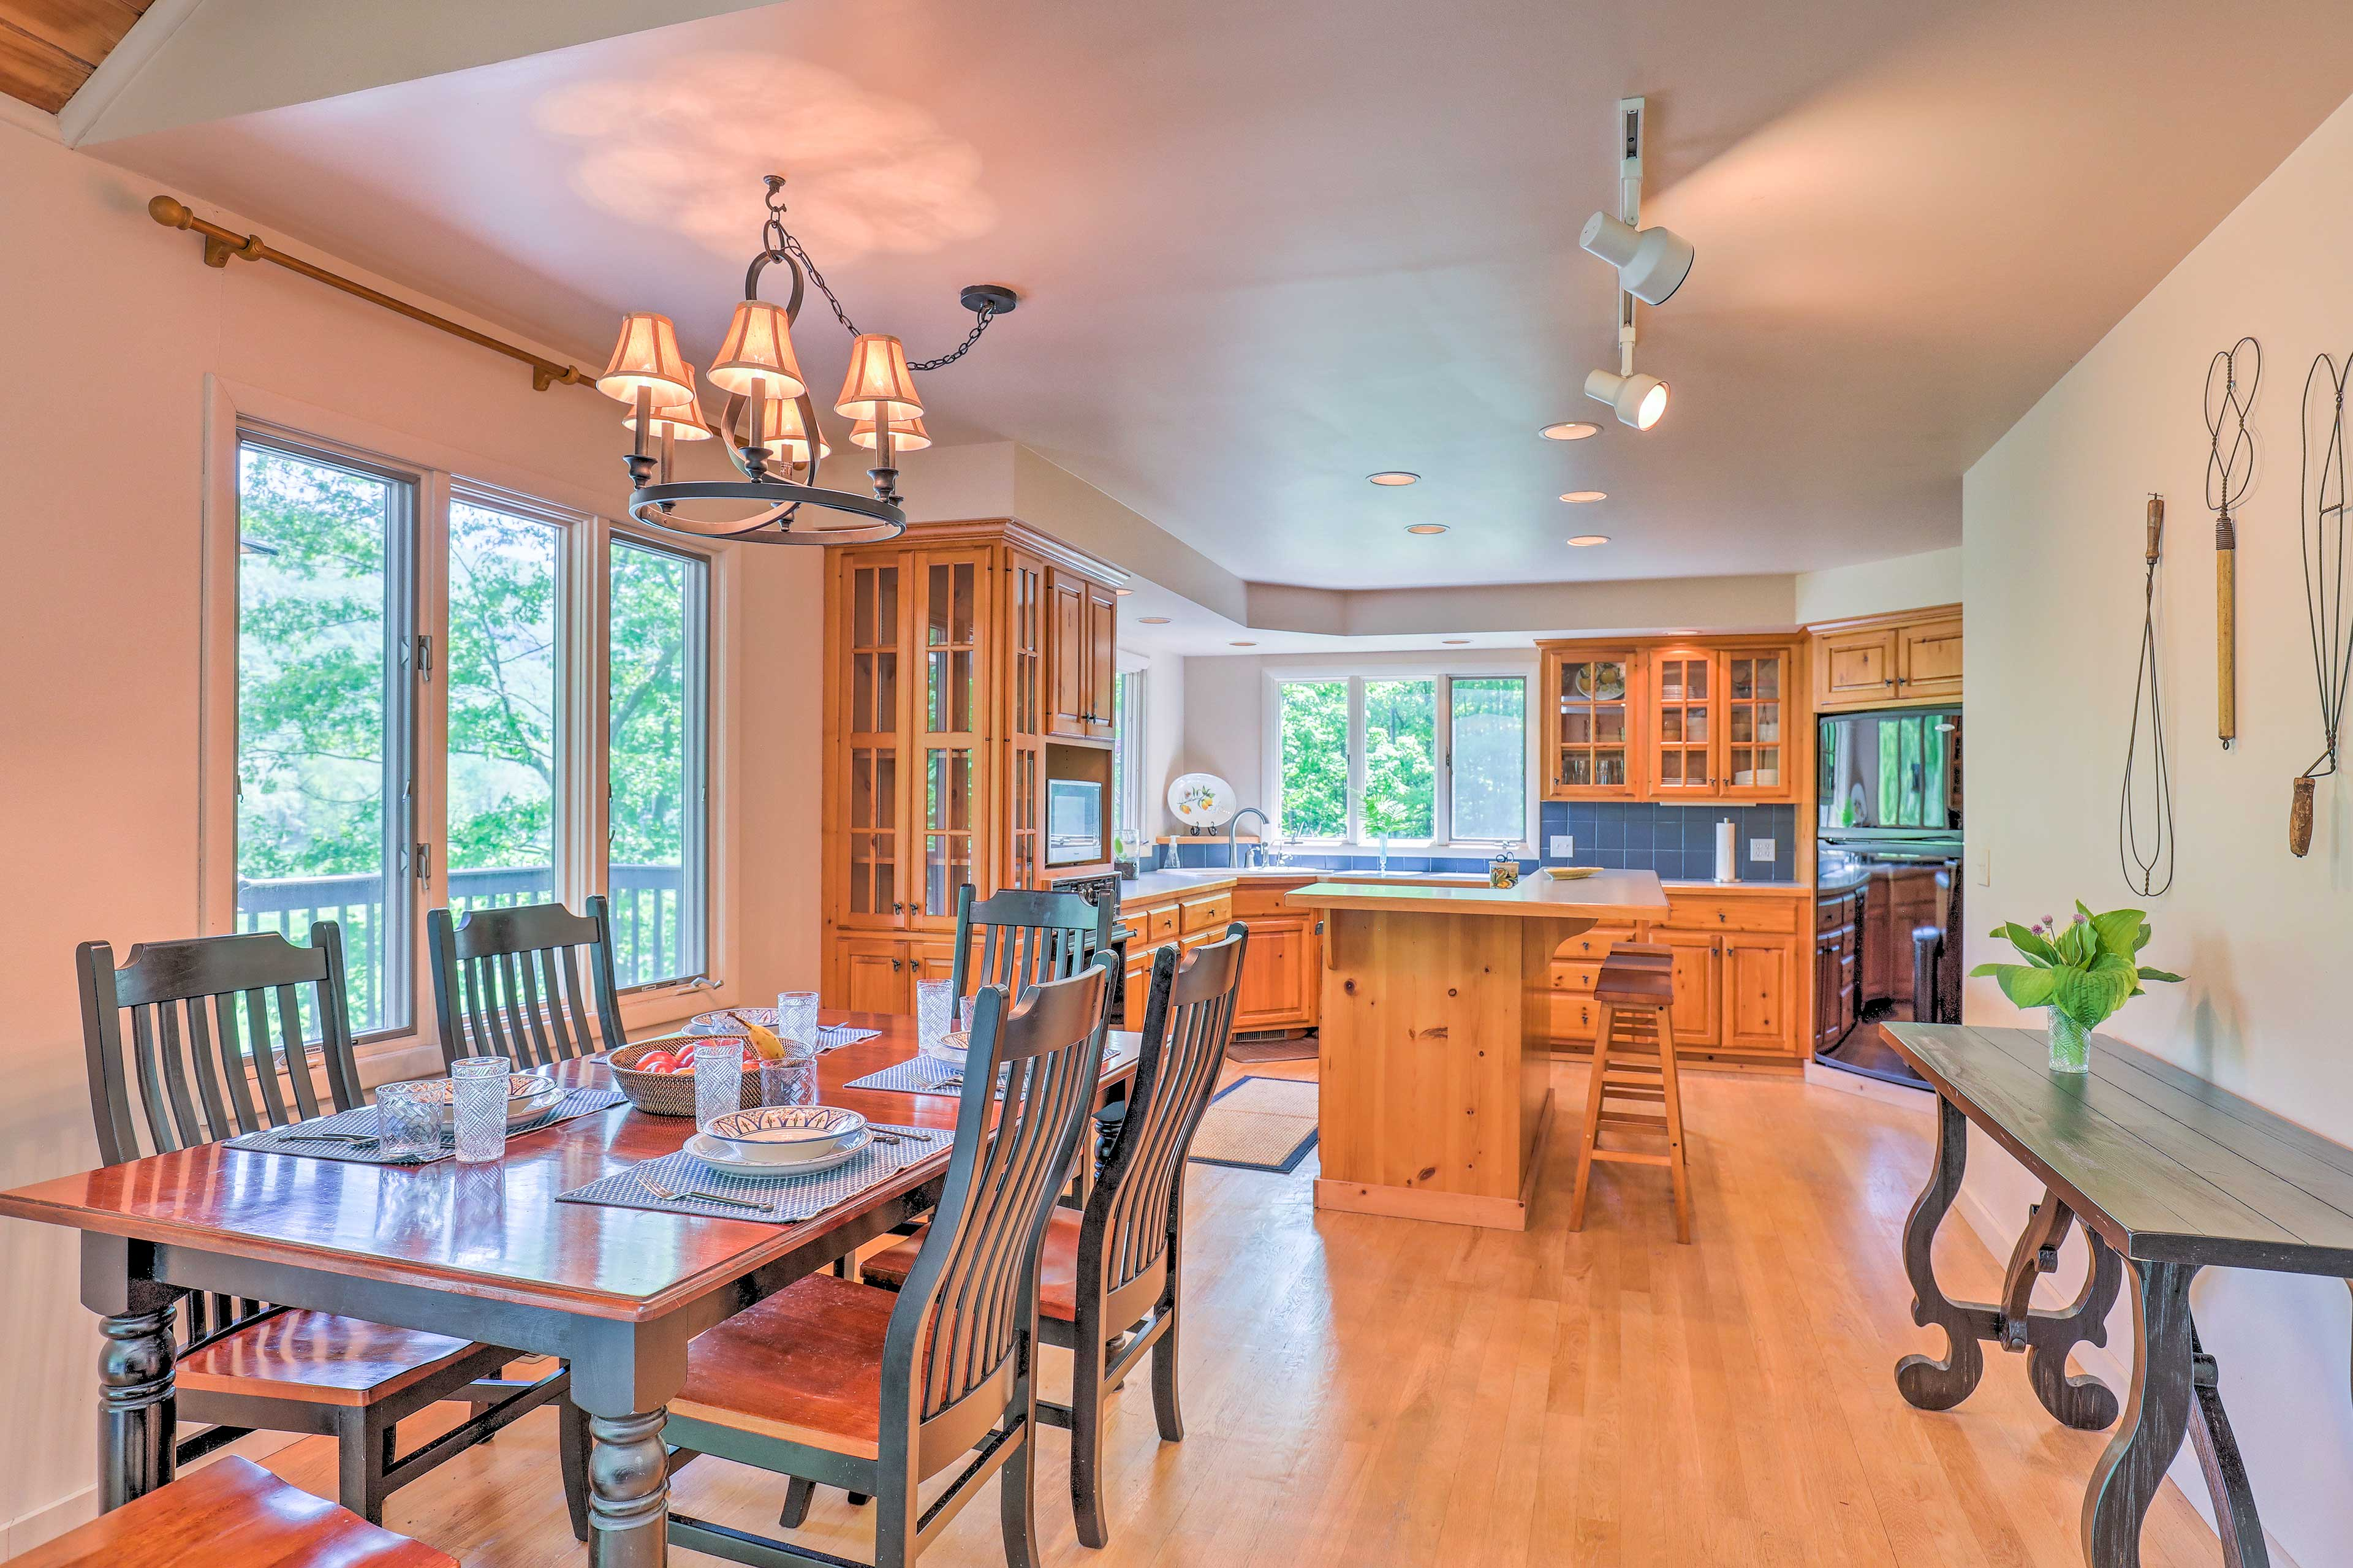 The dining area flows seamlessly into the kitchen space.